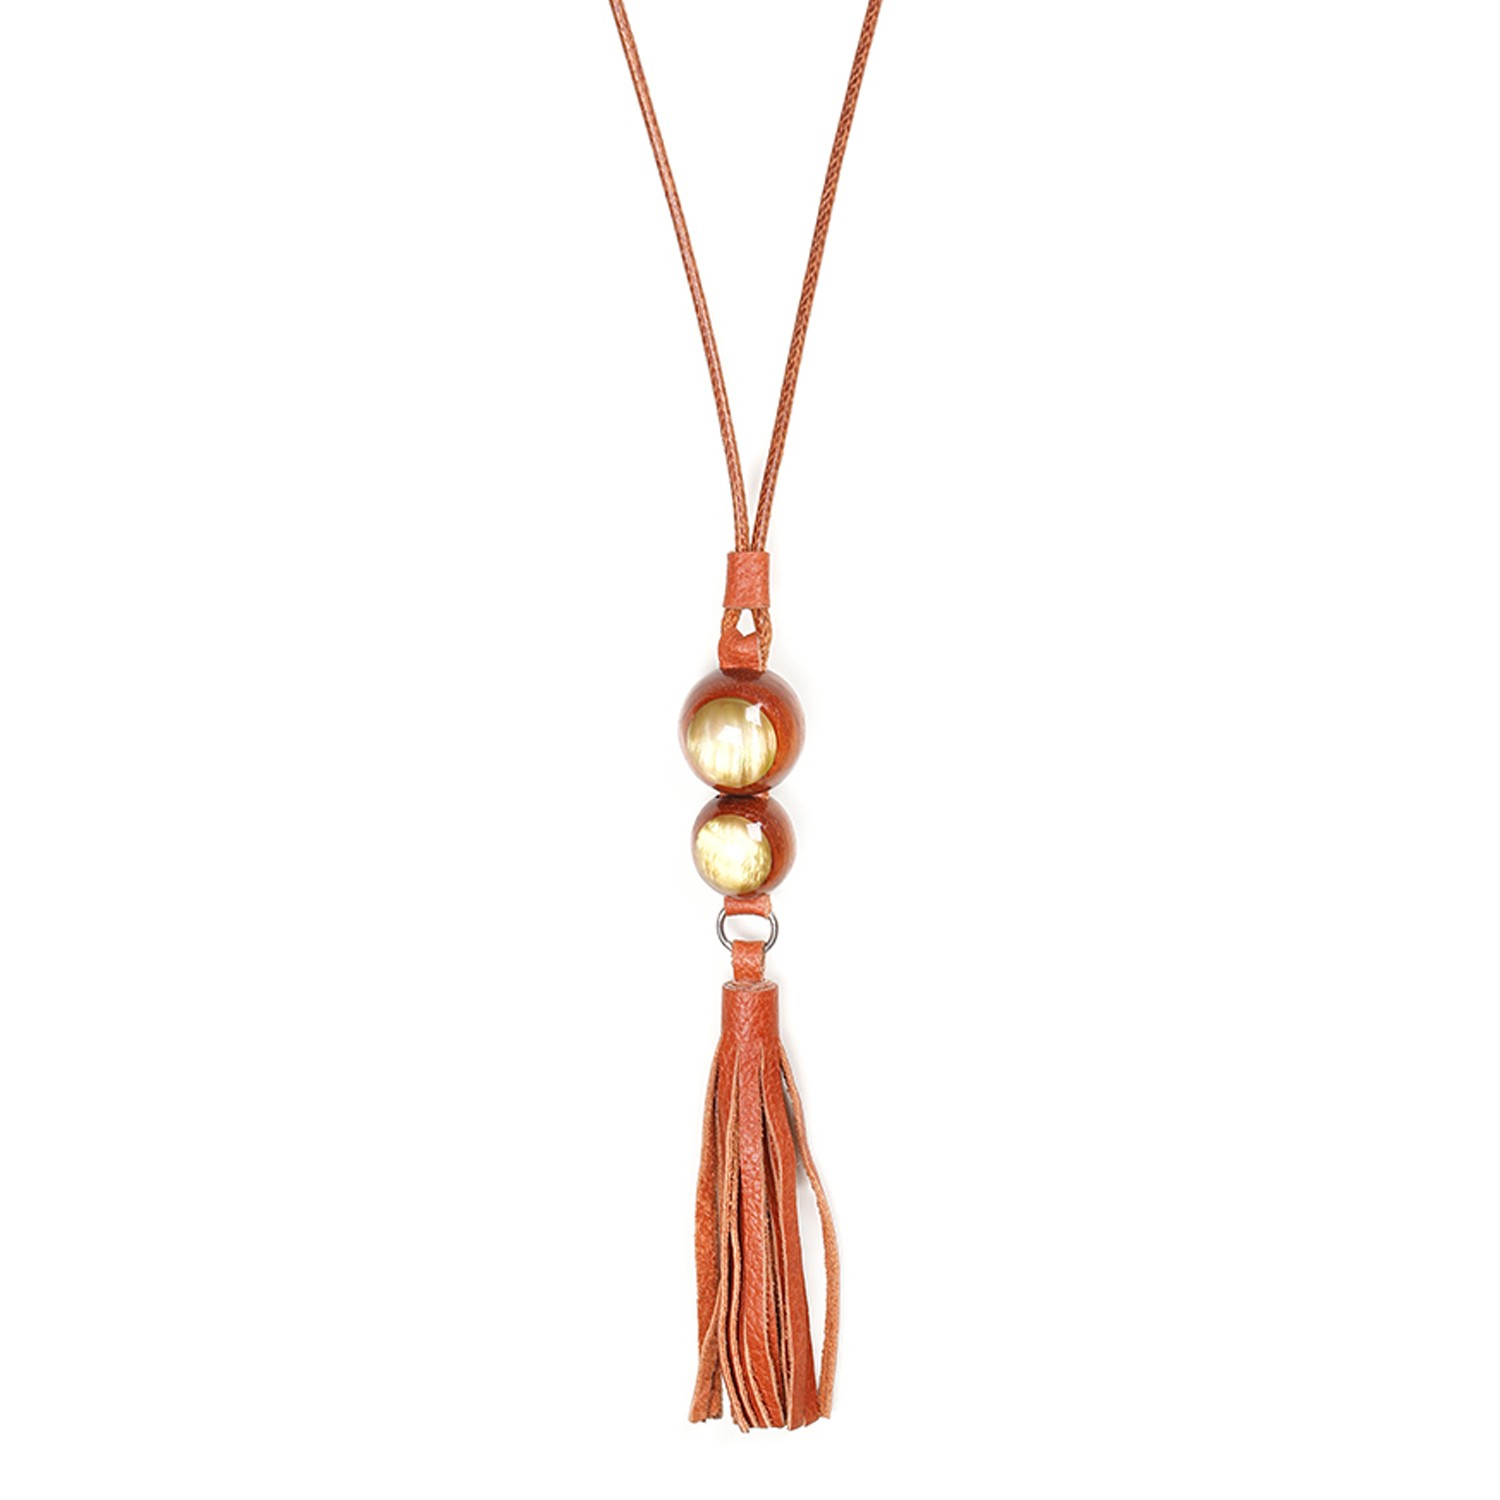 ROUSSETTE long necklace